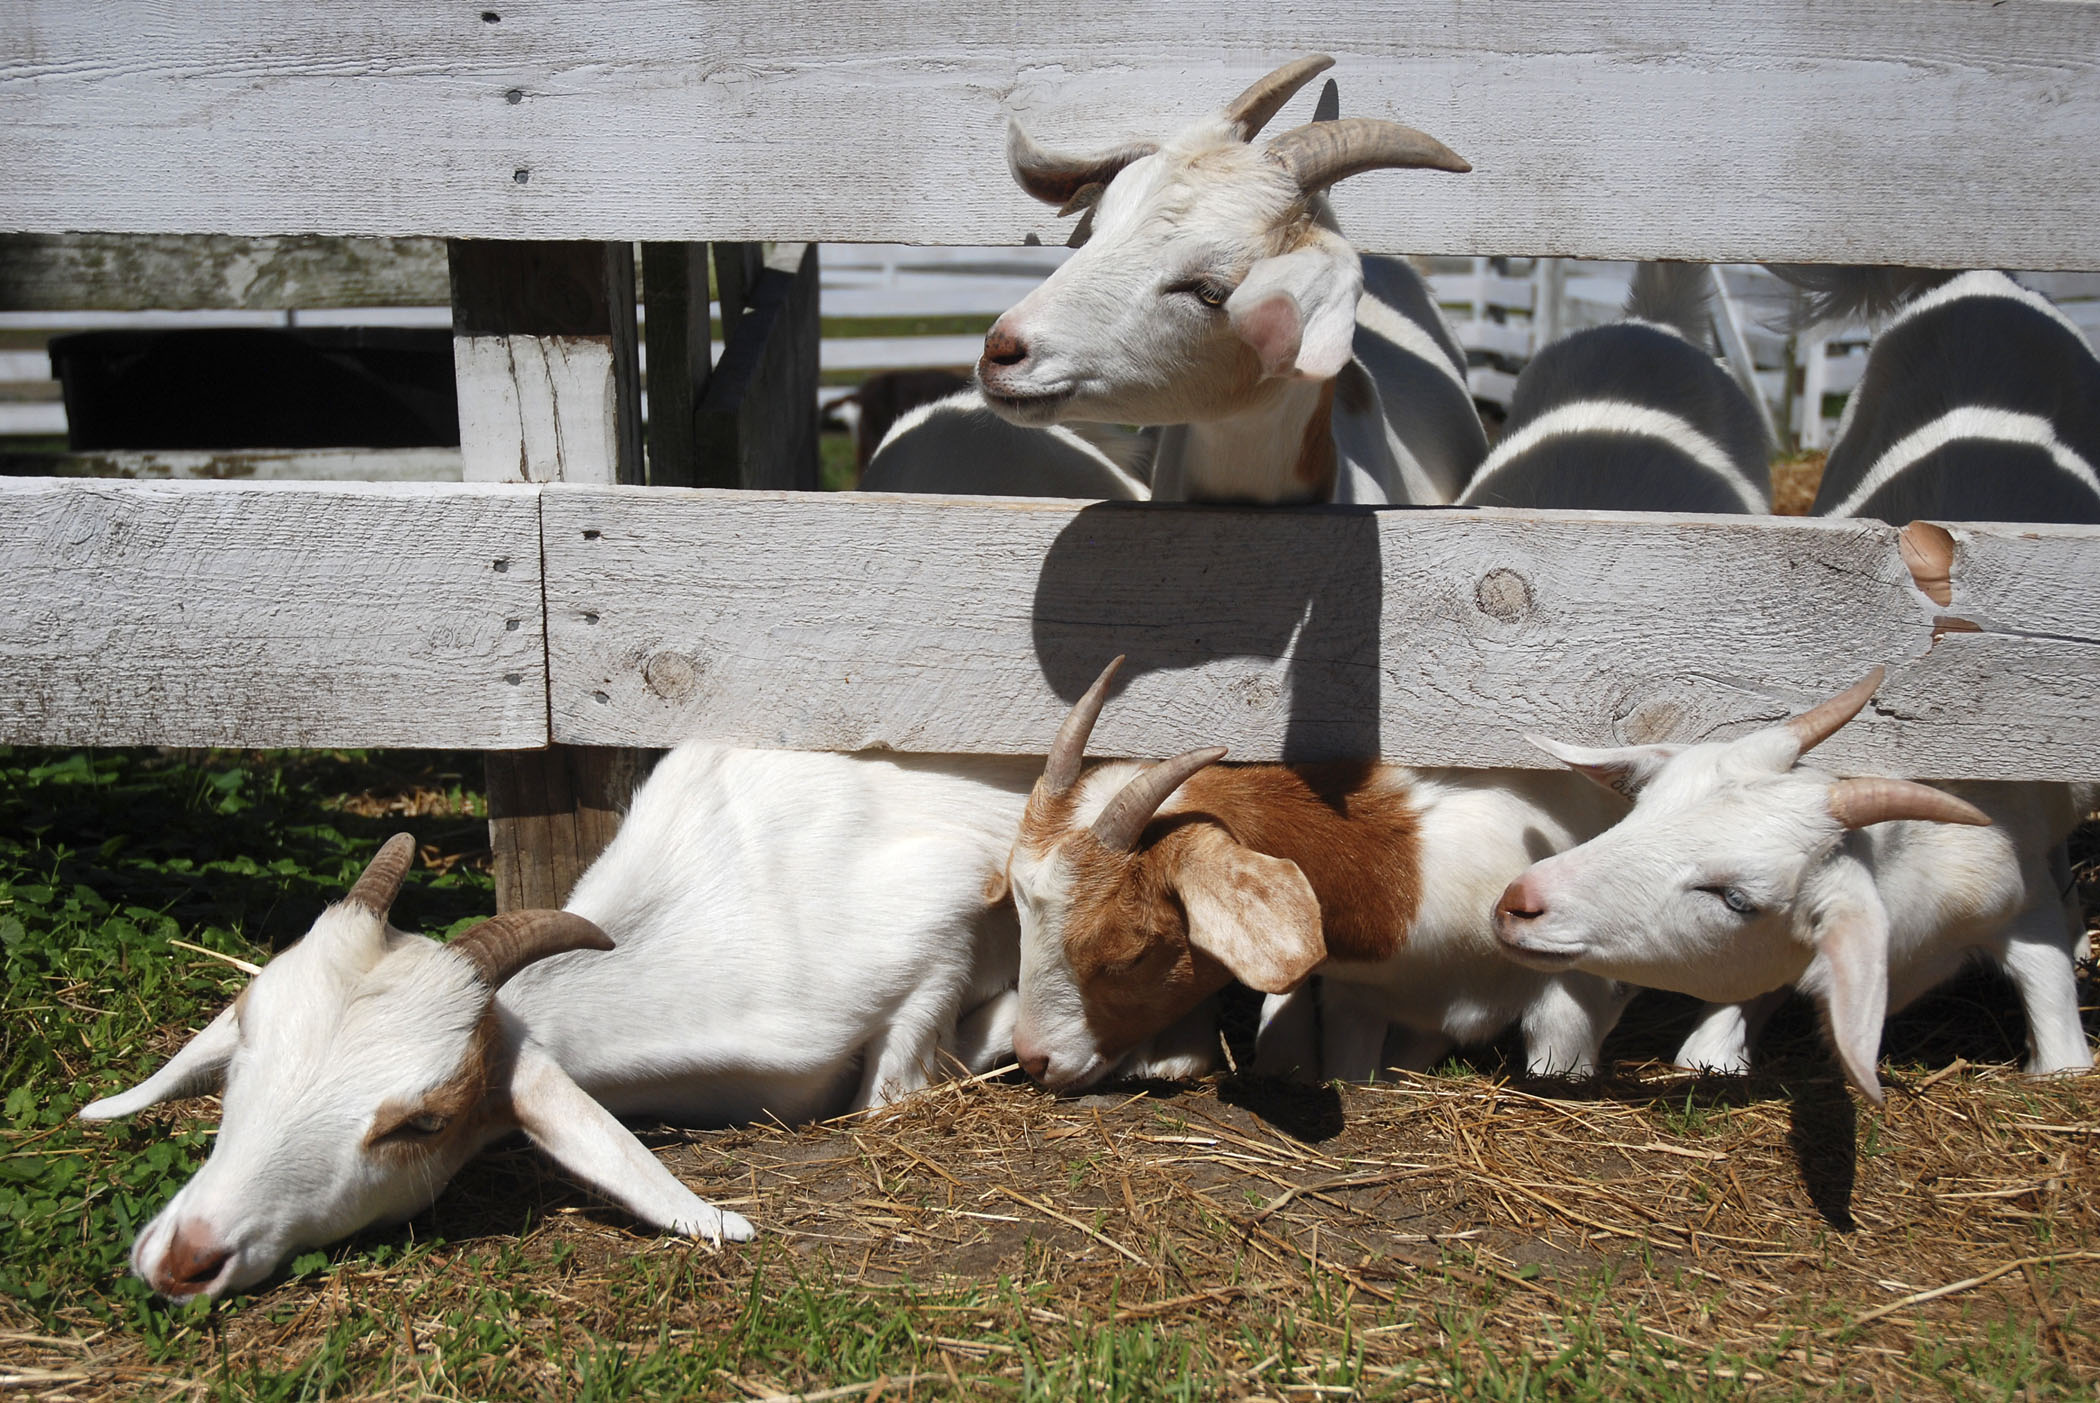 Goats stick their heads through the fence at the Retreat Farm in Brattleboro, Vt.